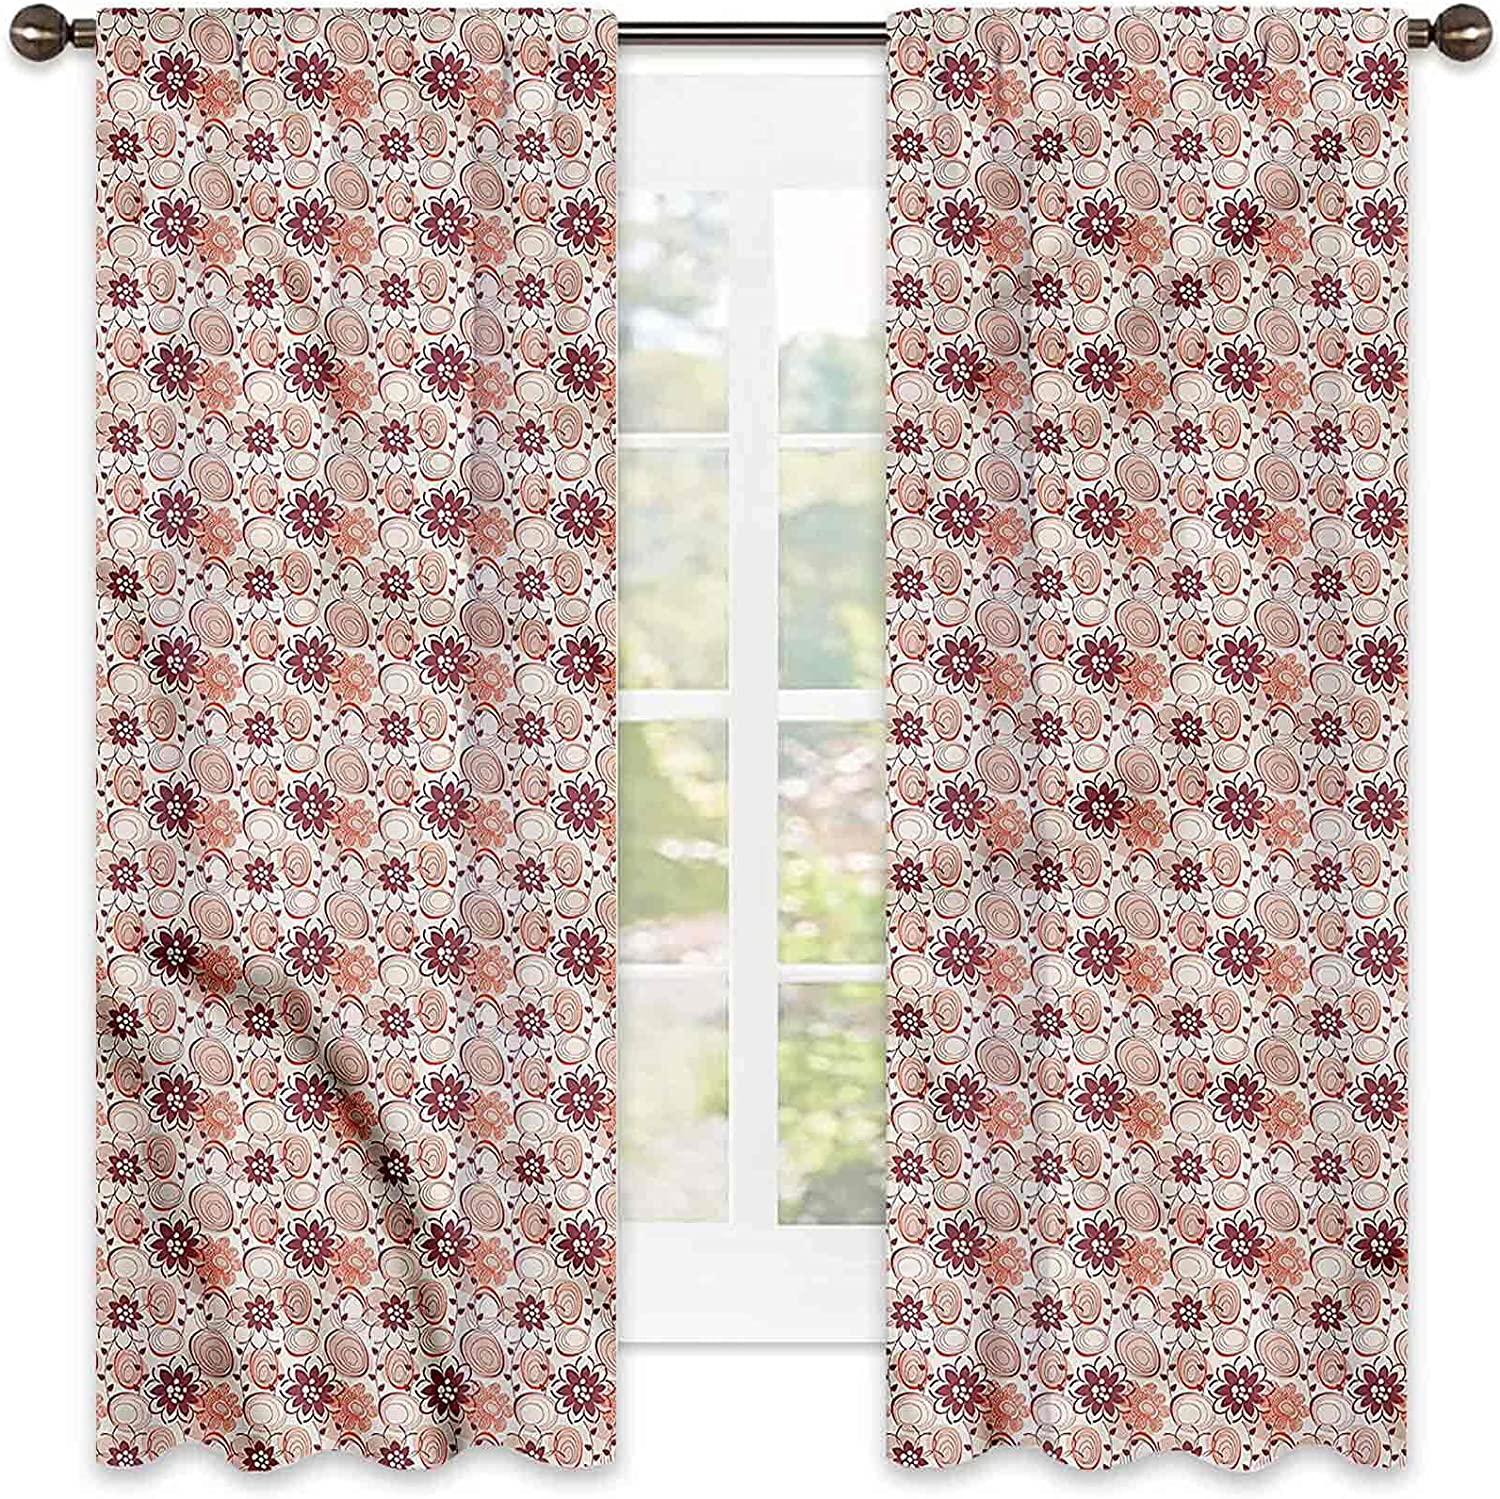 Floral 90% Blackout Curtains Abstract 2021 spring and summer new Set Translated Blooms of Tw Circles